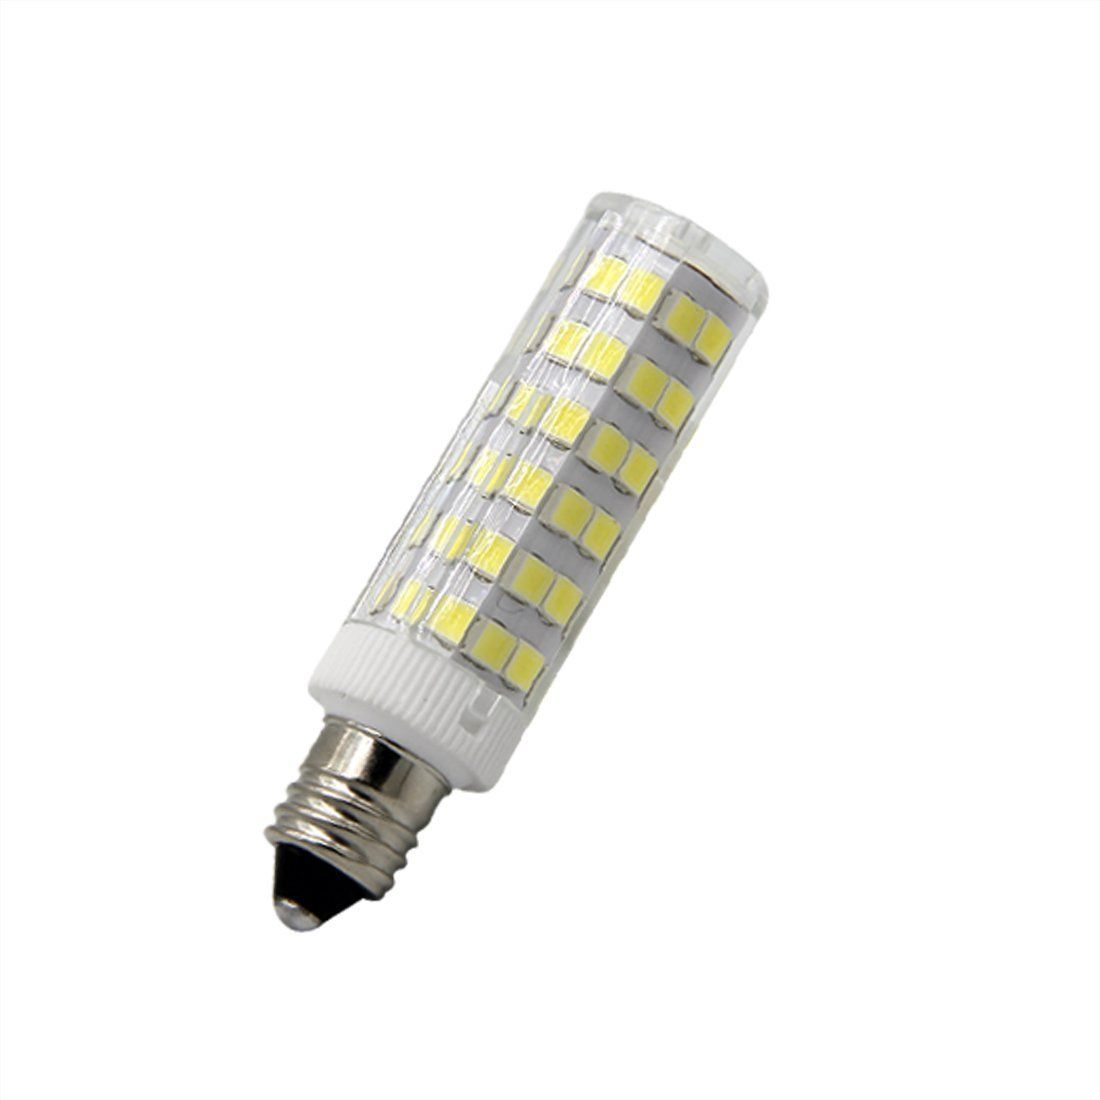 E11 Led Light Bulb 5w To 6w 60w 120v 130v Halogen Bulbs Equivalent Mini Candelabra Jd E11 Base T3 T4 Led Bulb Dimmab Light Bulb Light Bulbs Halogen Light Bulbs